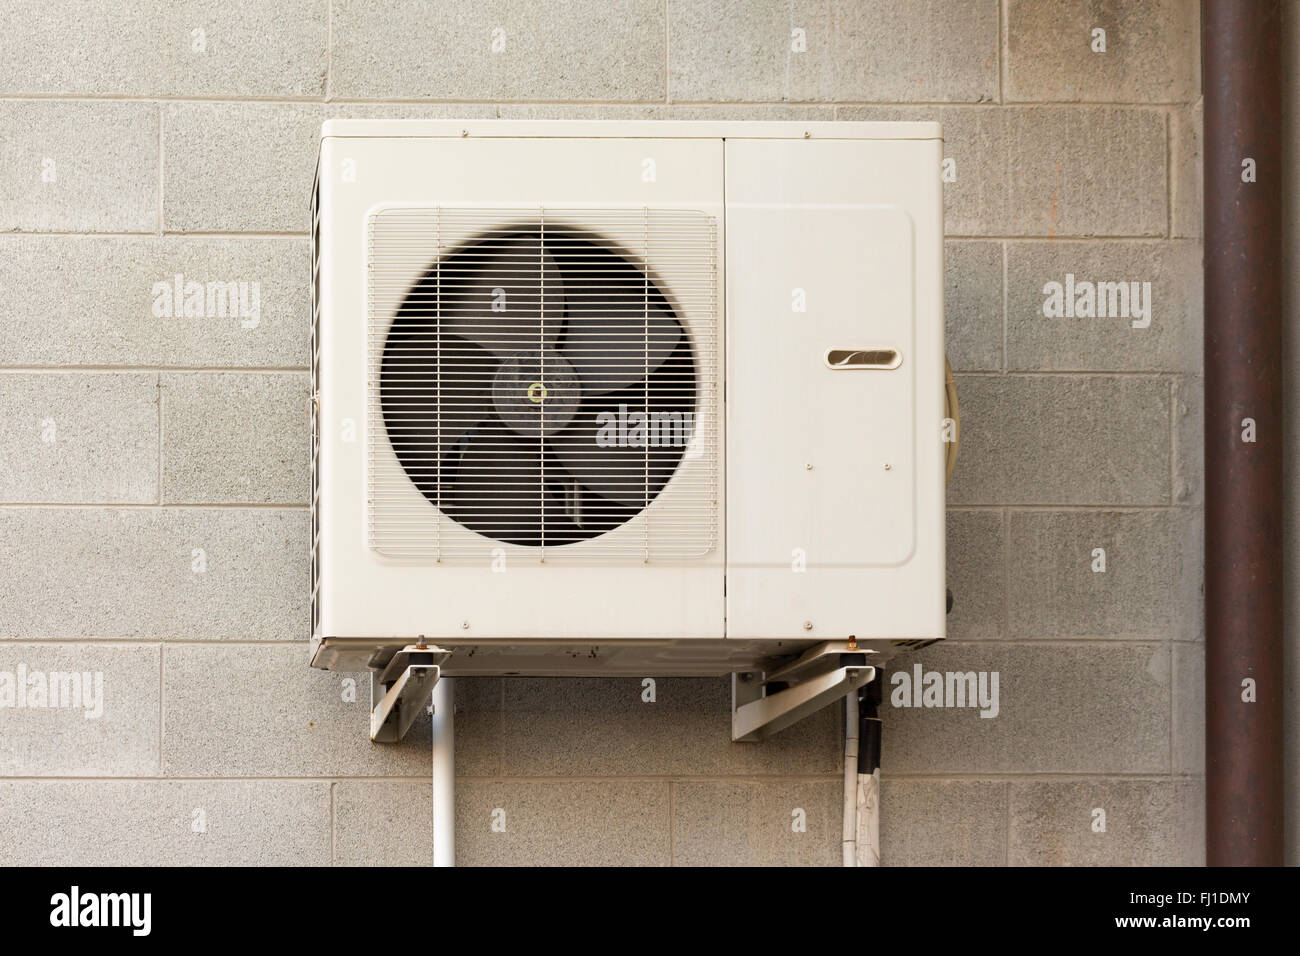 Air conditioning units for heating and cooling - Stock Image